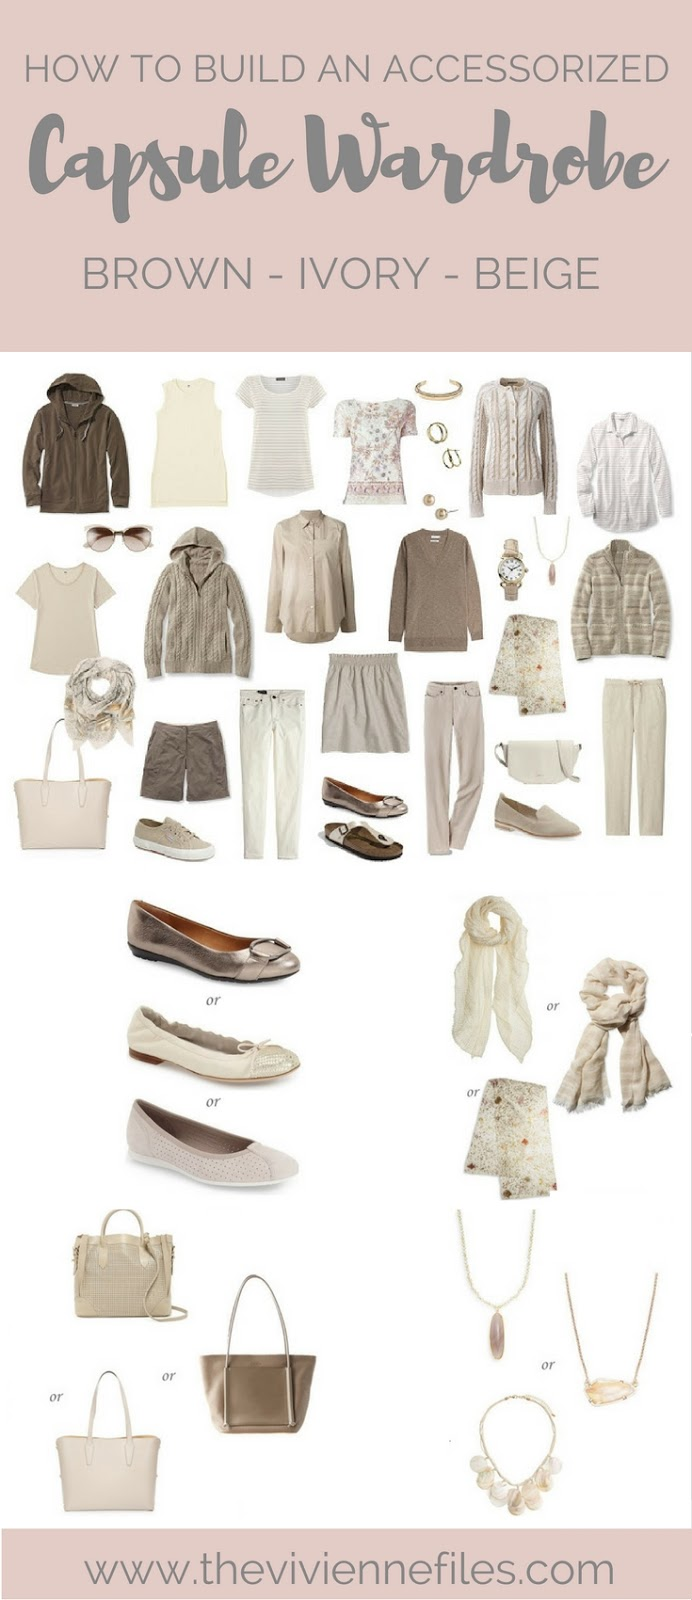 How To Build A Capsule Wardrobe Of Accessories 1 At A Time